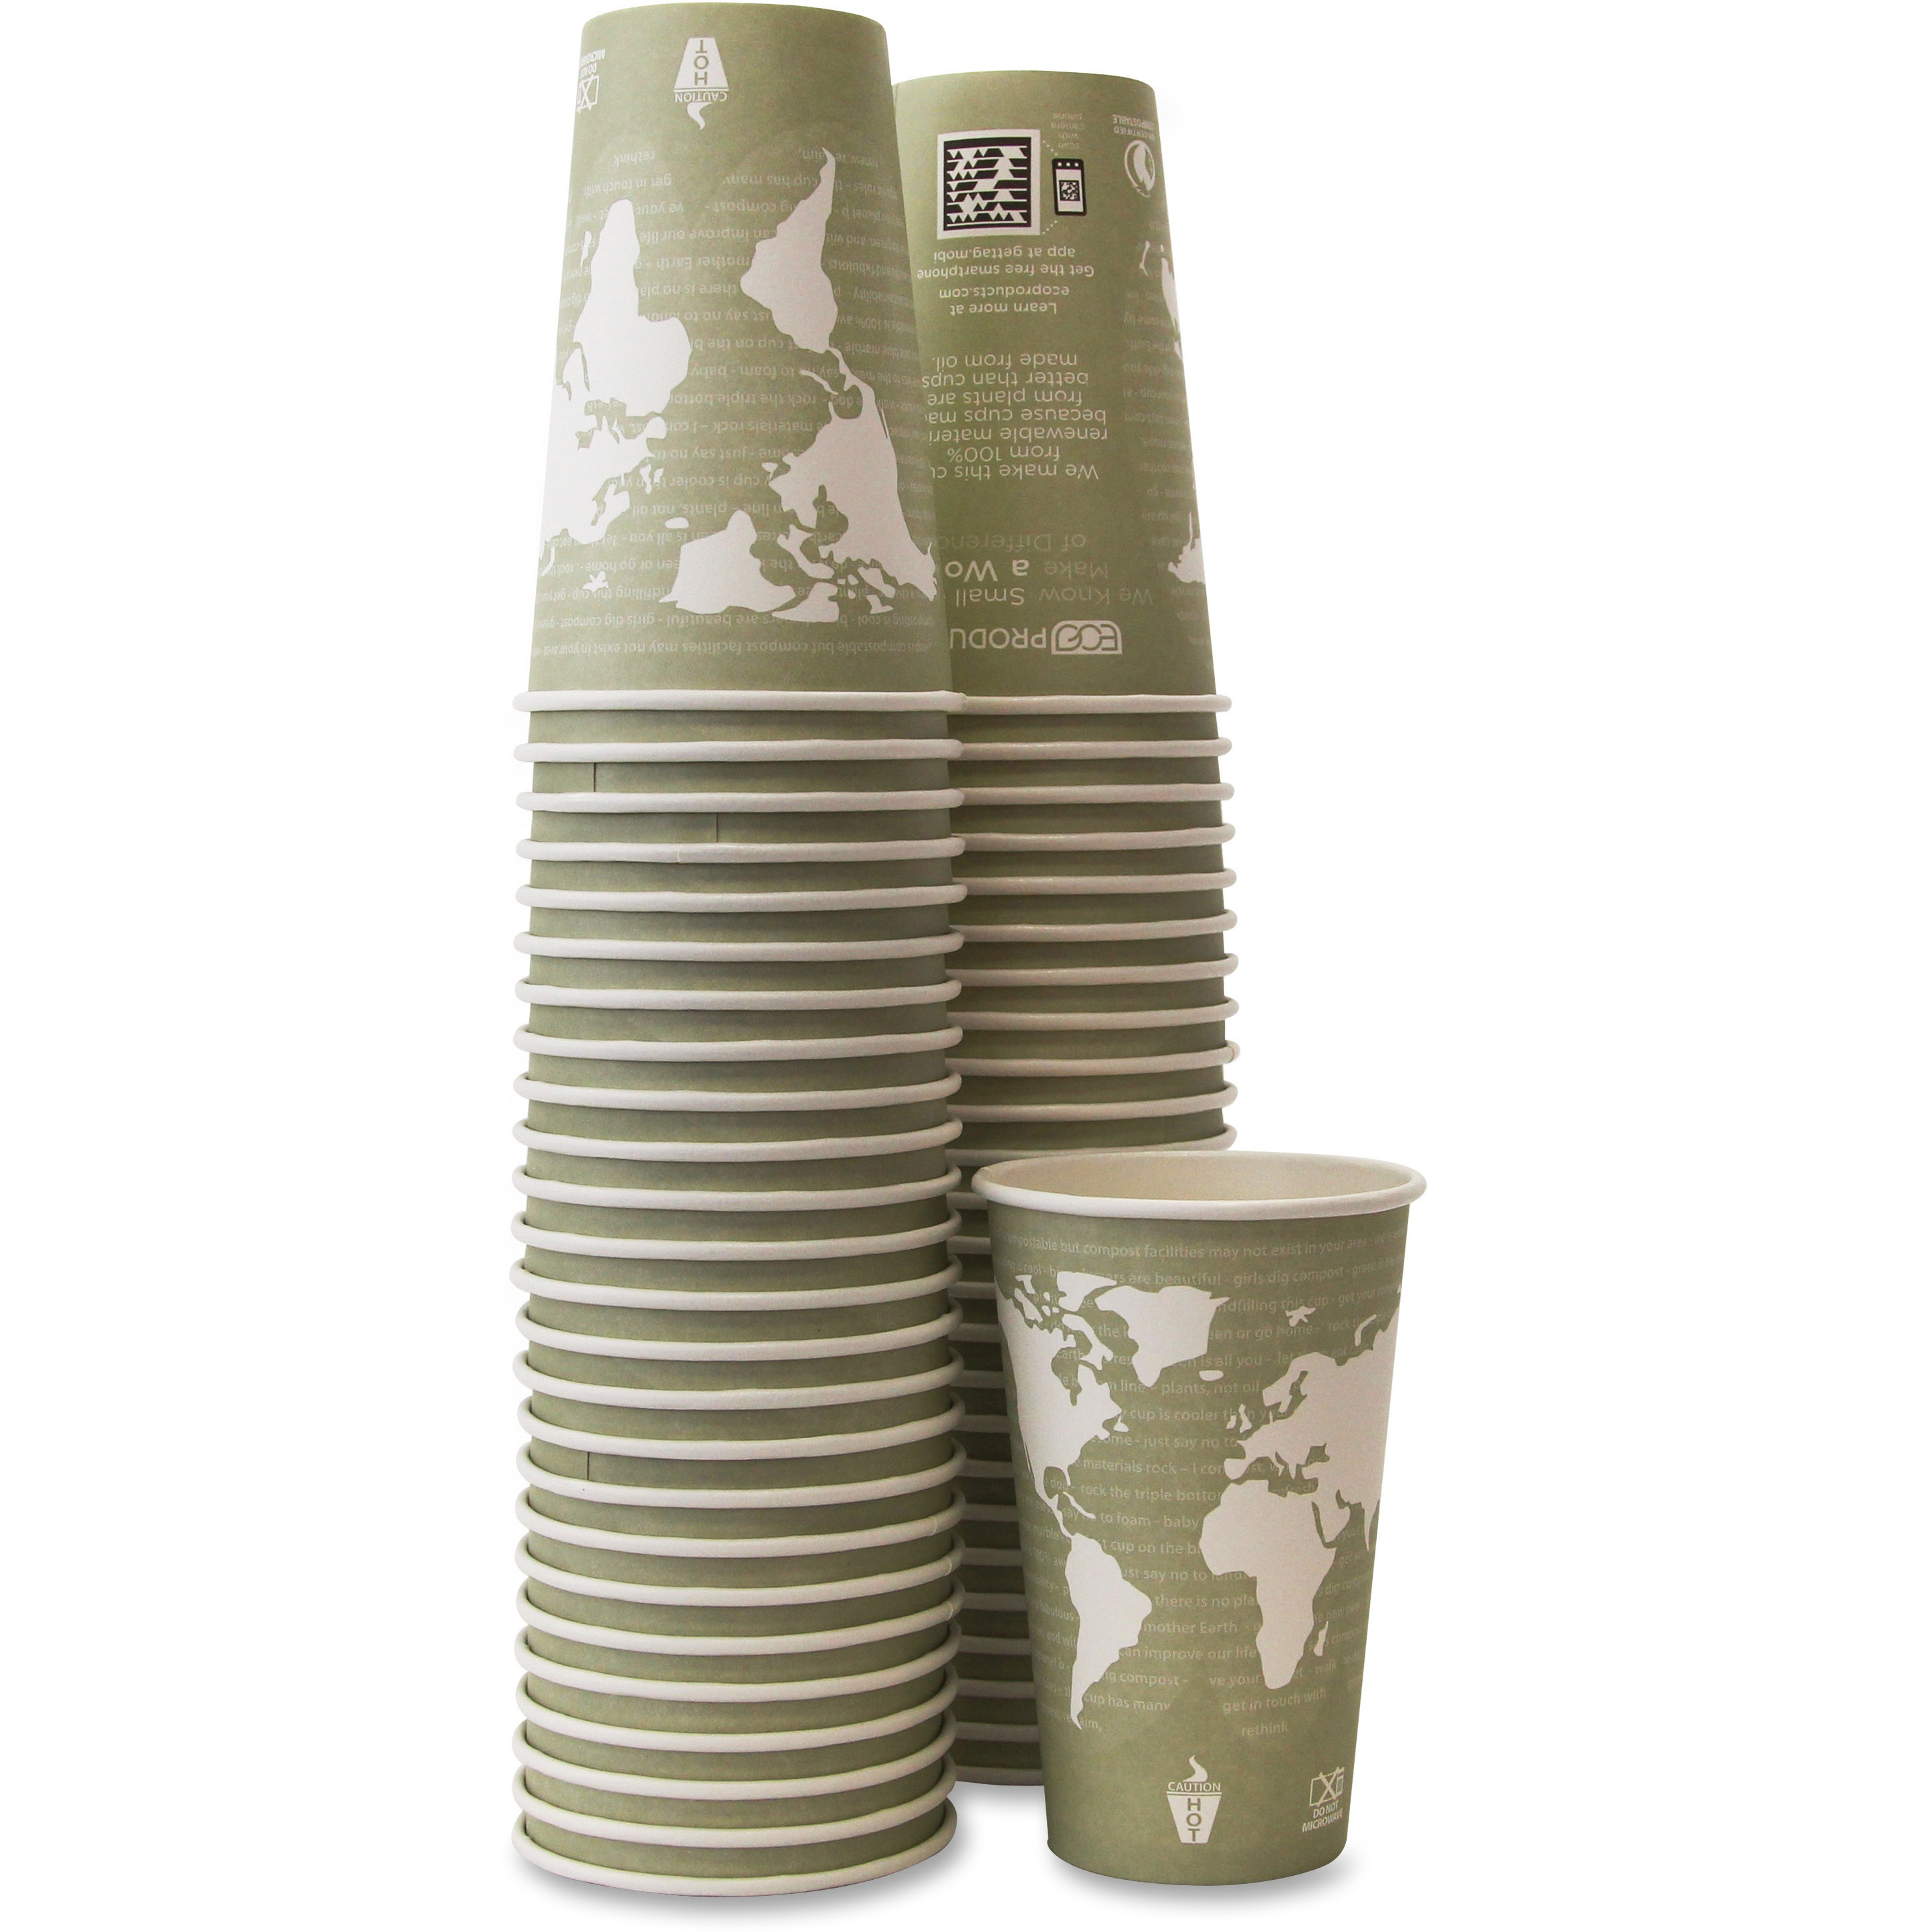 Eco-Products Renewable Resource Hot Drink Cups, Multi, 50 / Pack (Quantity)